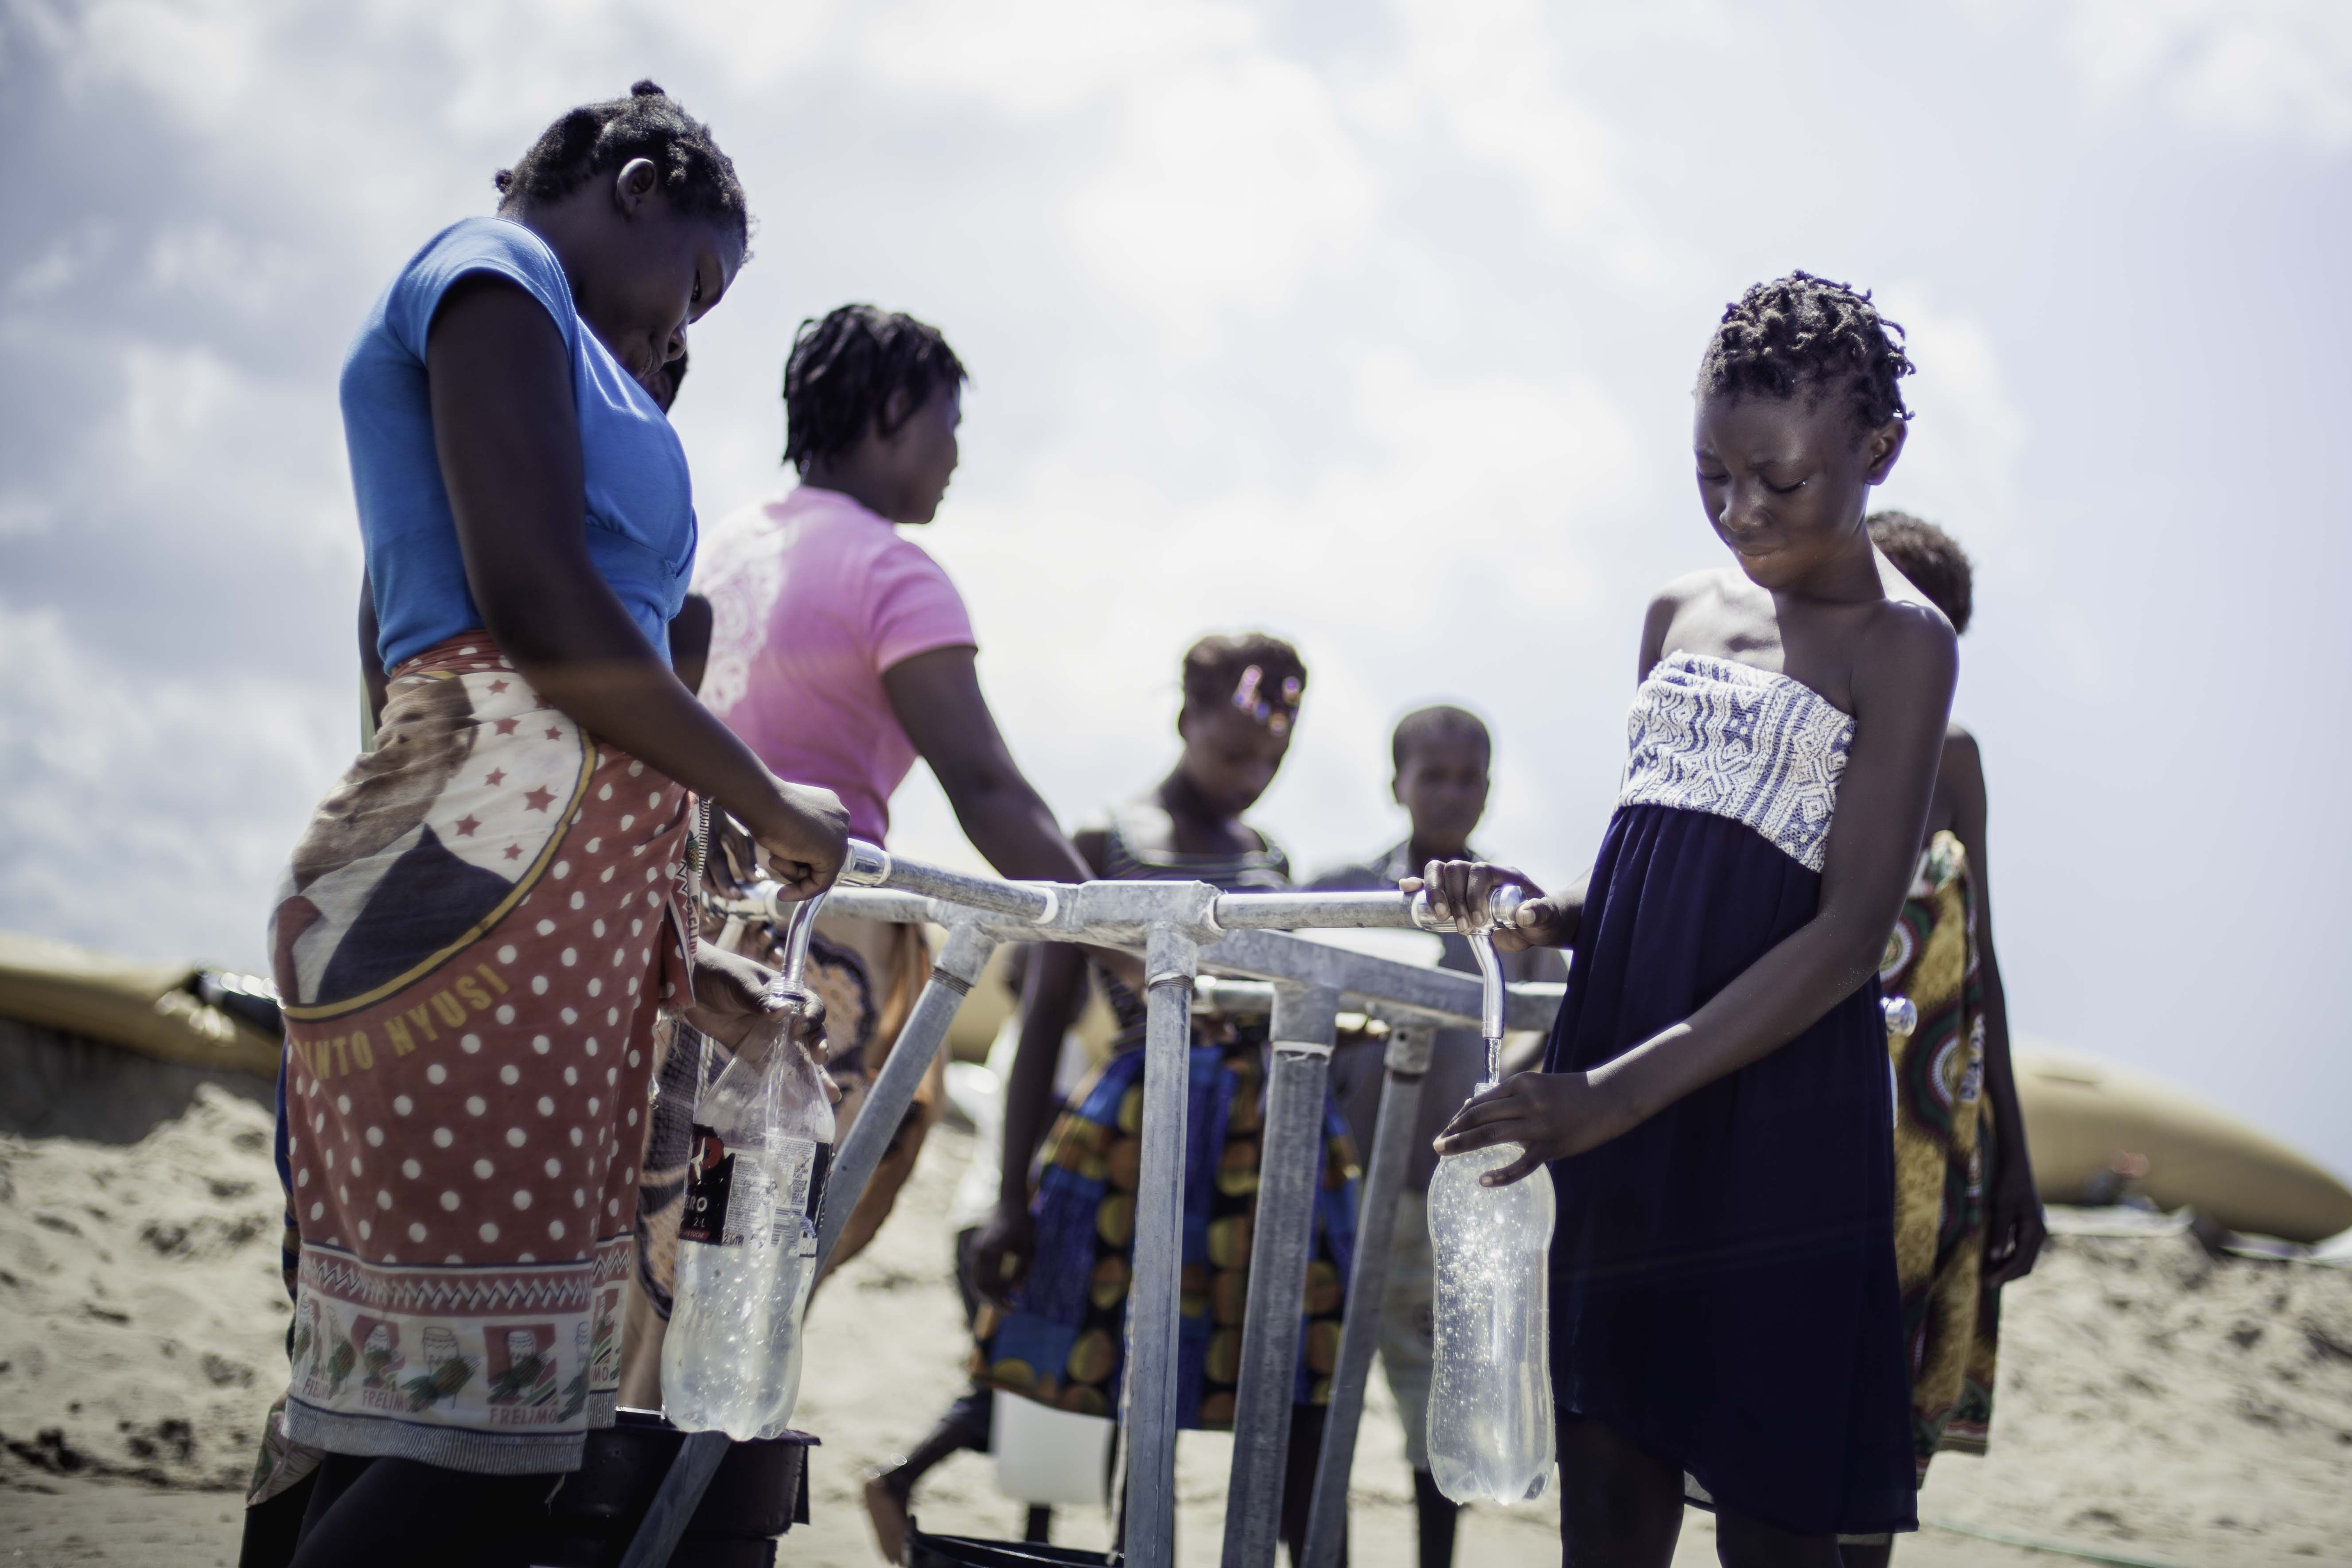 Teresa Jone Vilanculos (right), 14, filling her bottle at the tap stand. She has fled her village Mangalaforte, together with her family, when their house was washed away in cyclone Idai. (Photo: Micas Mondlane / Oxfam Novib)